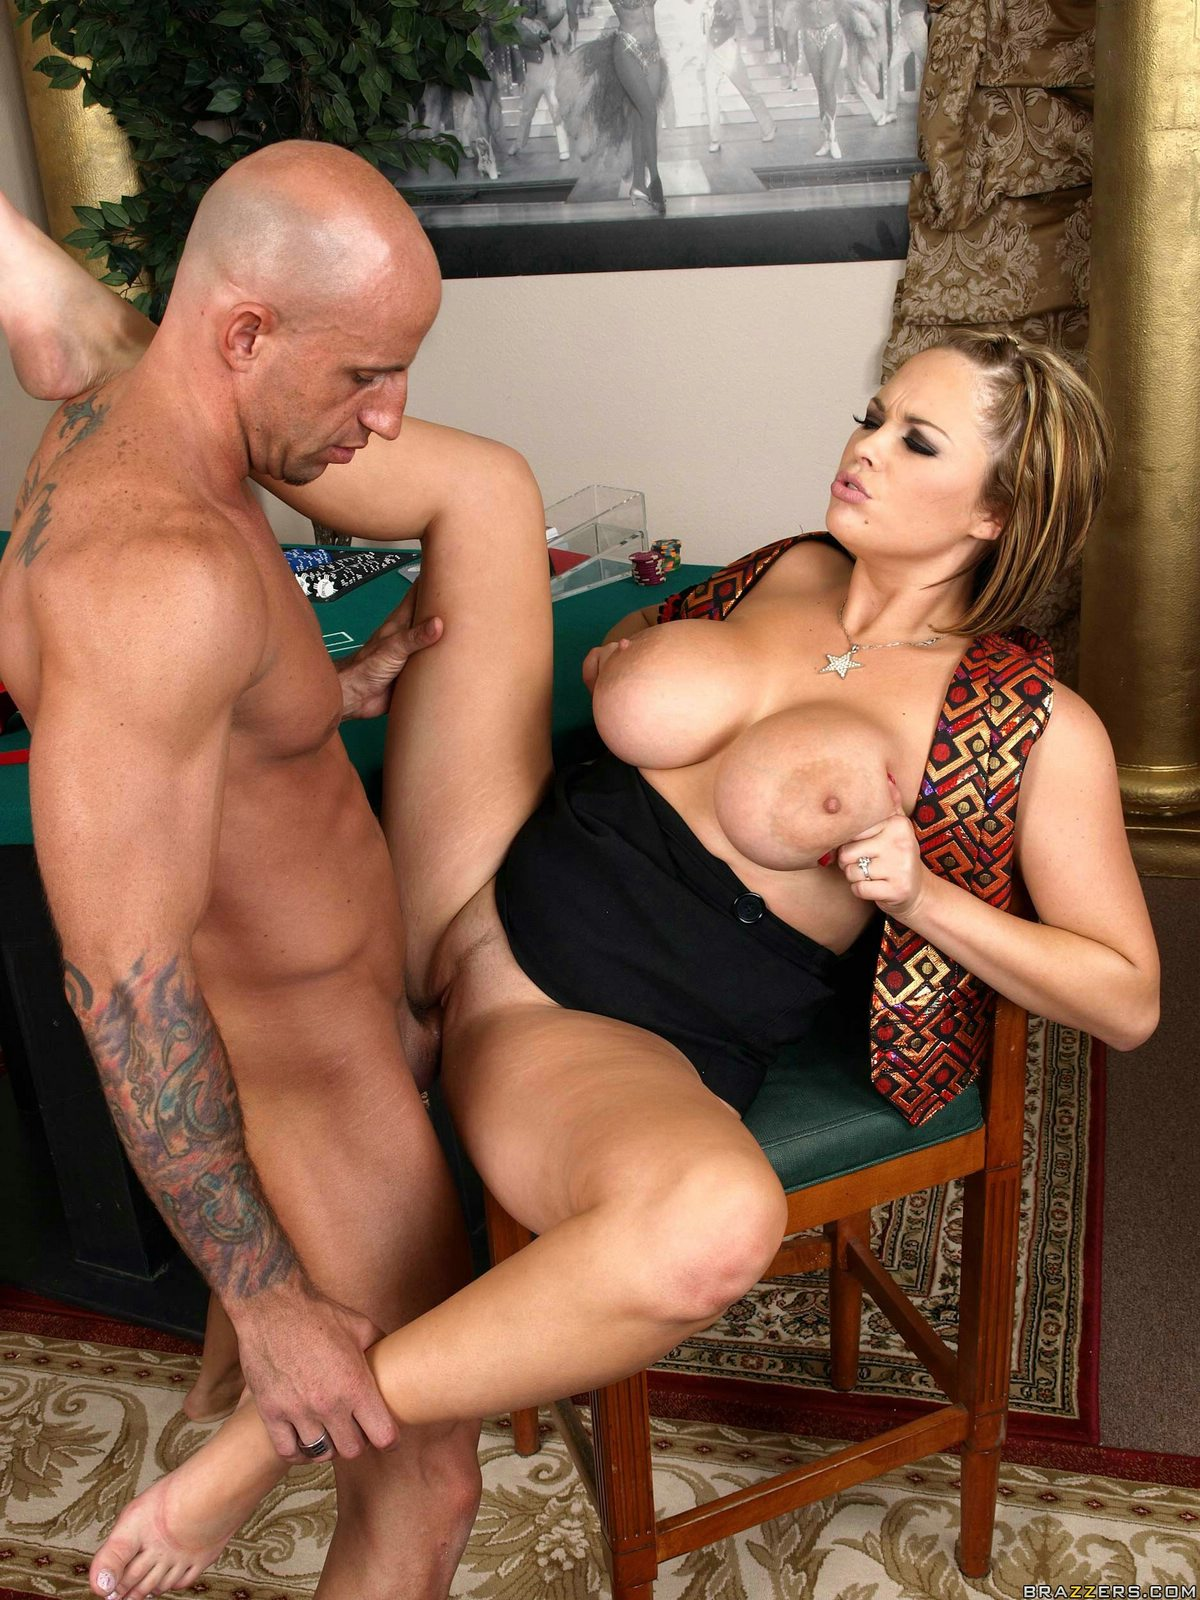 Mega busty blond mommy katie kox gets mouth fucked by african studs hard